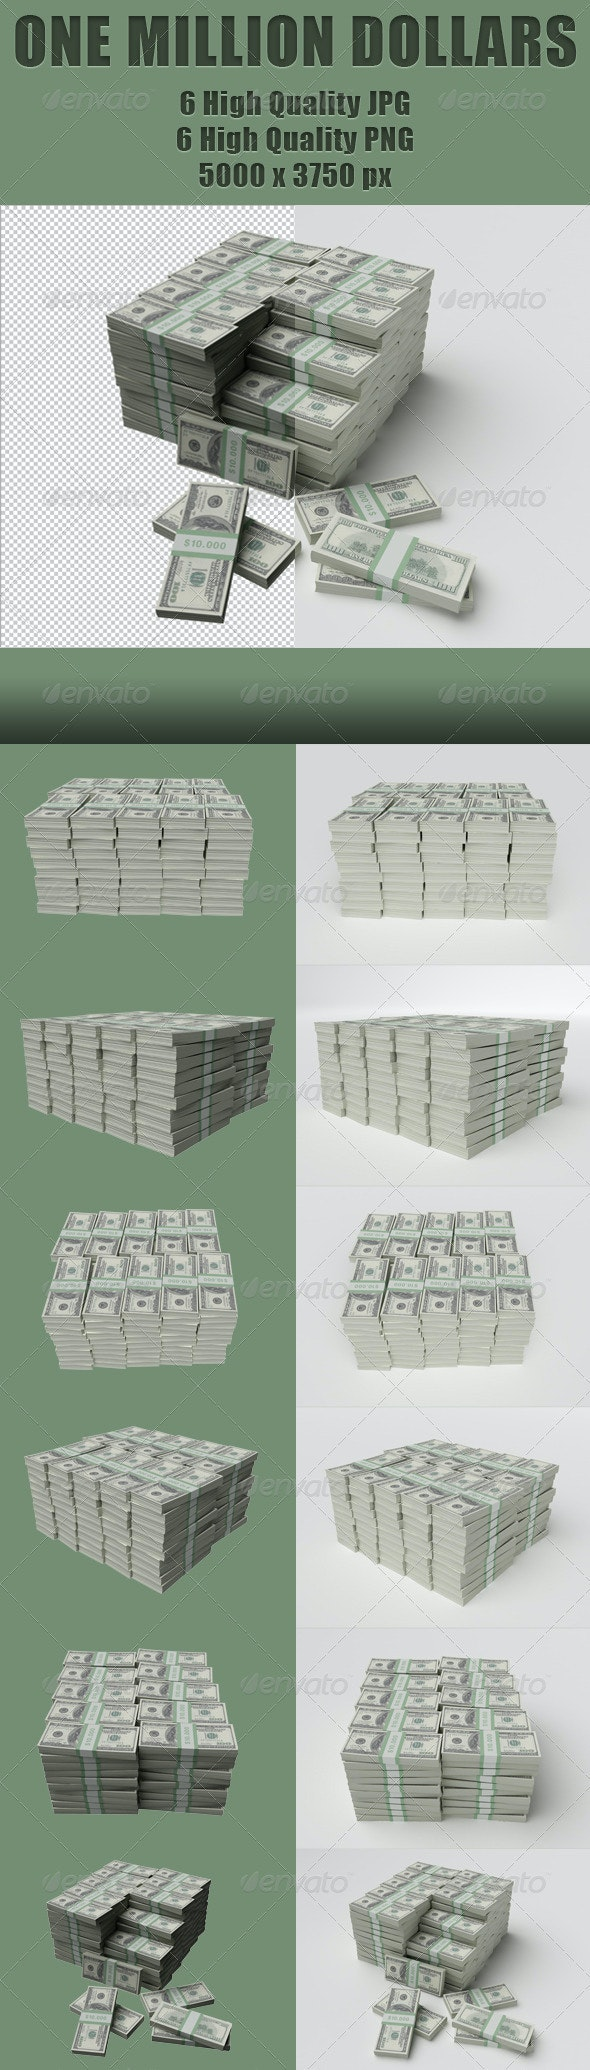 One Million Dollars - 3D Renders Graphics